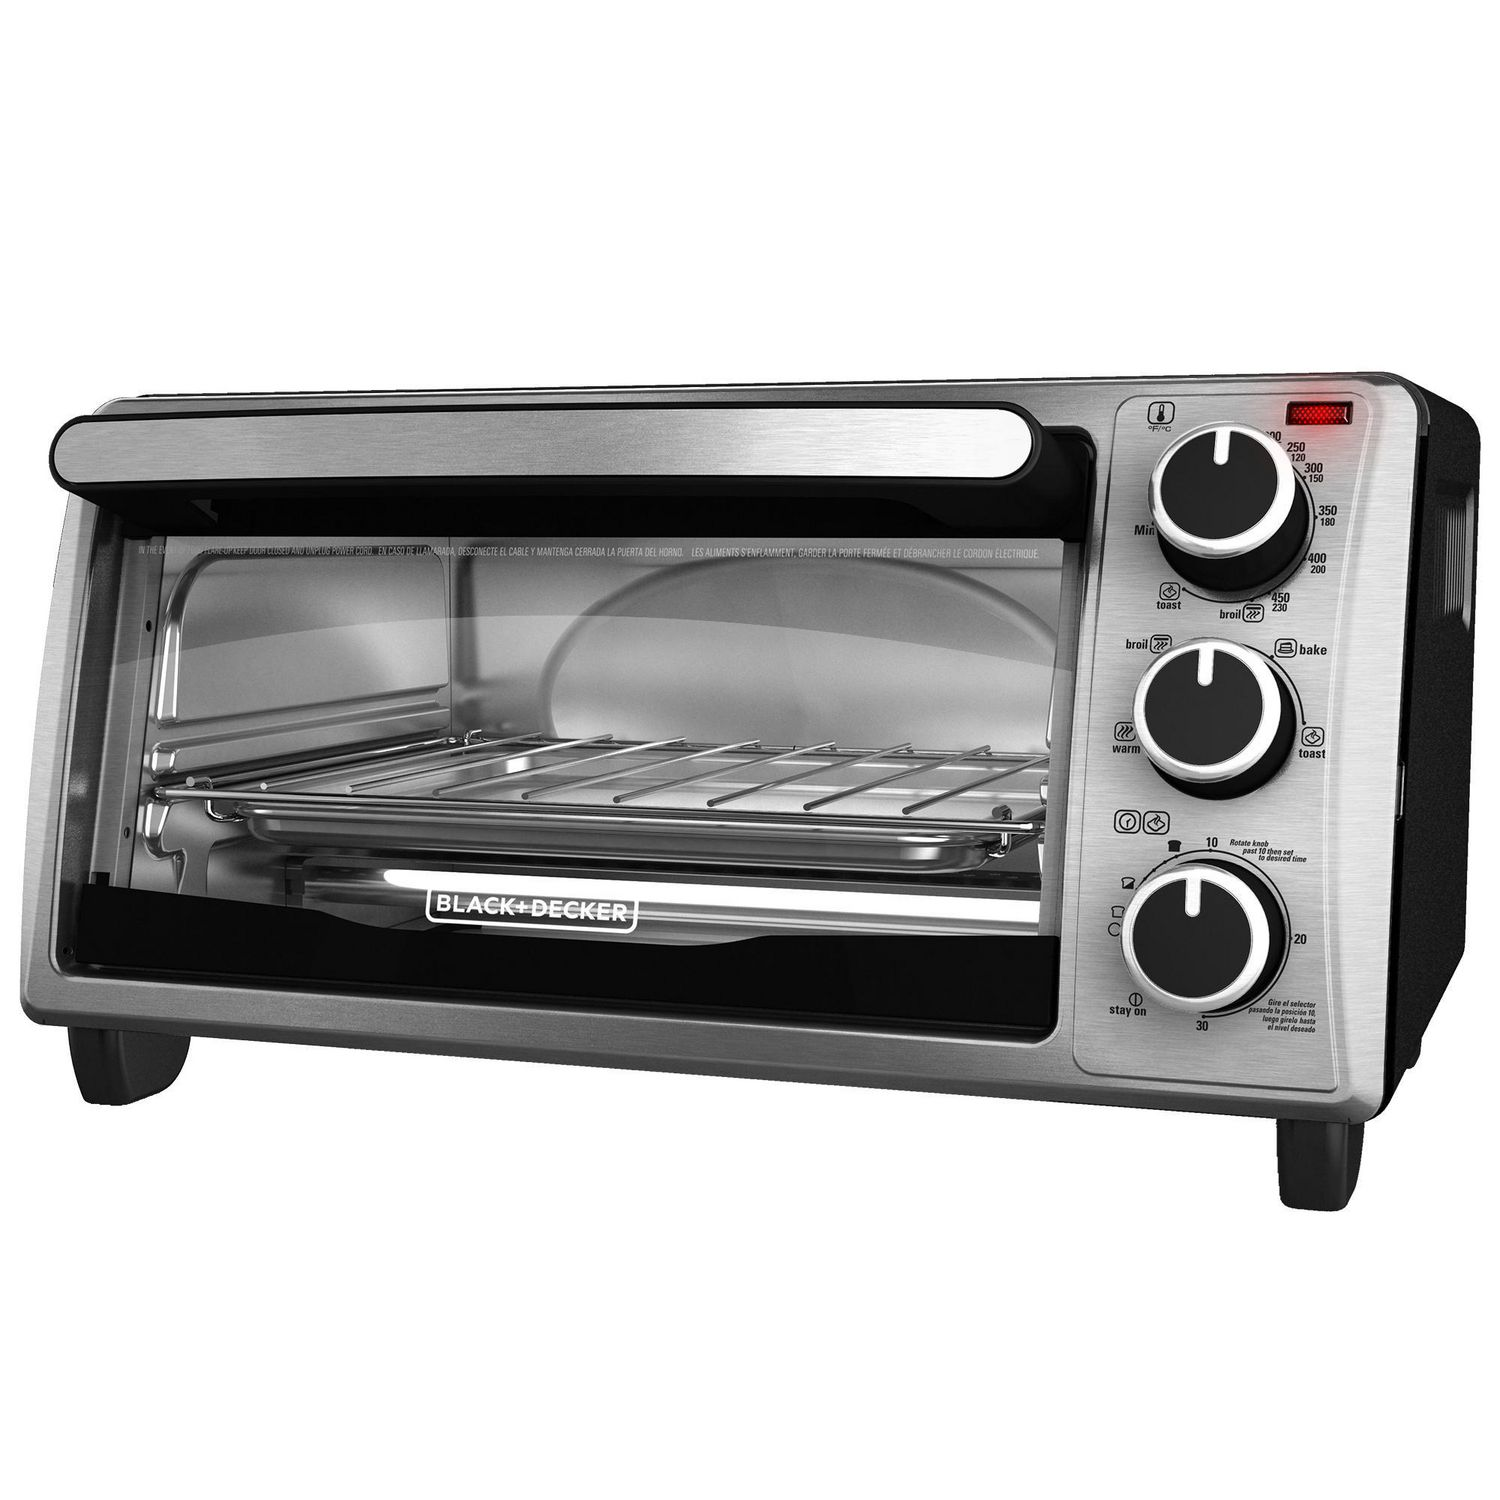 volt decker and non sized liter toaster medium black oven usa